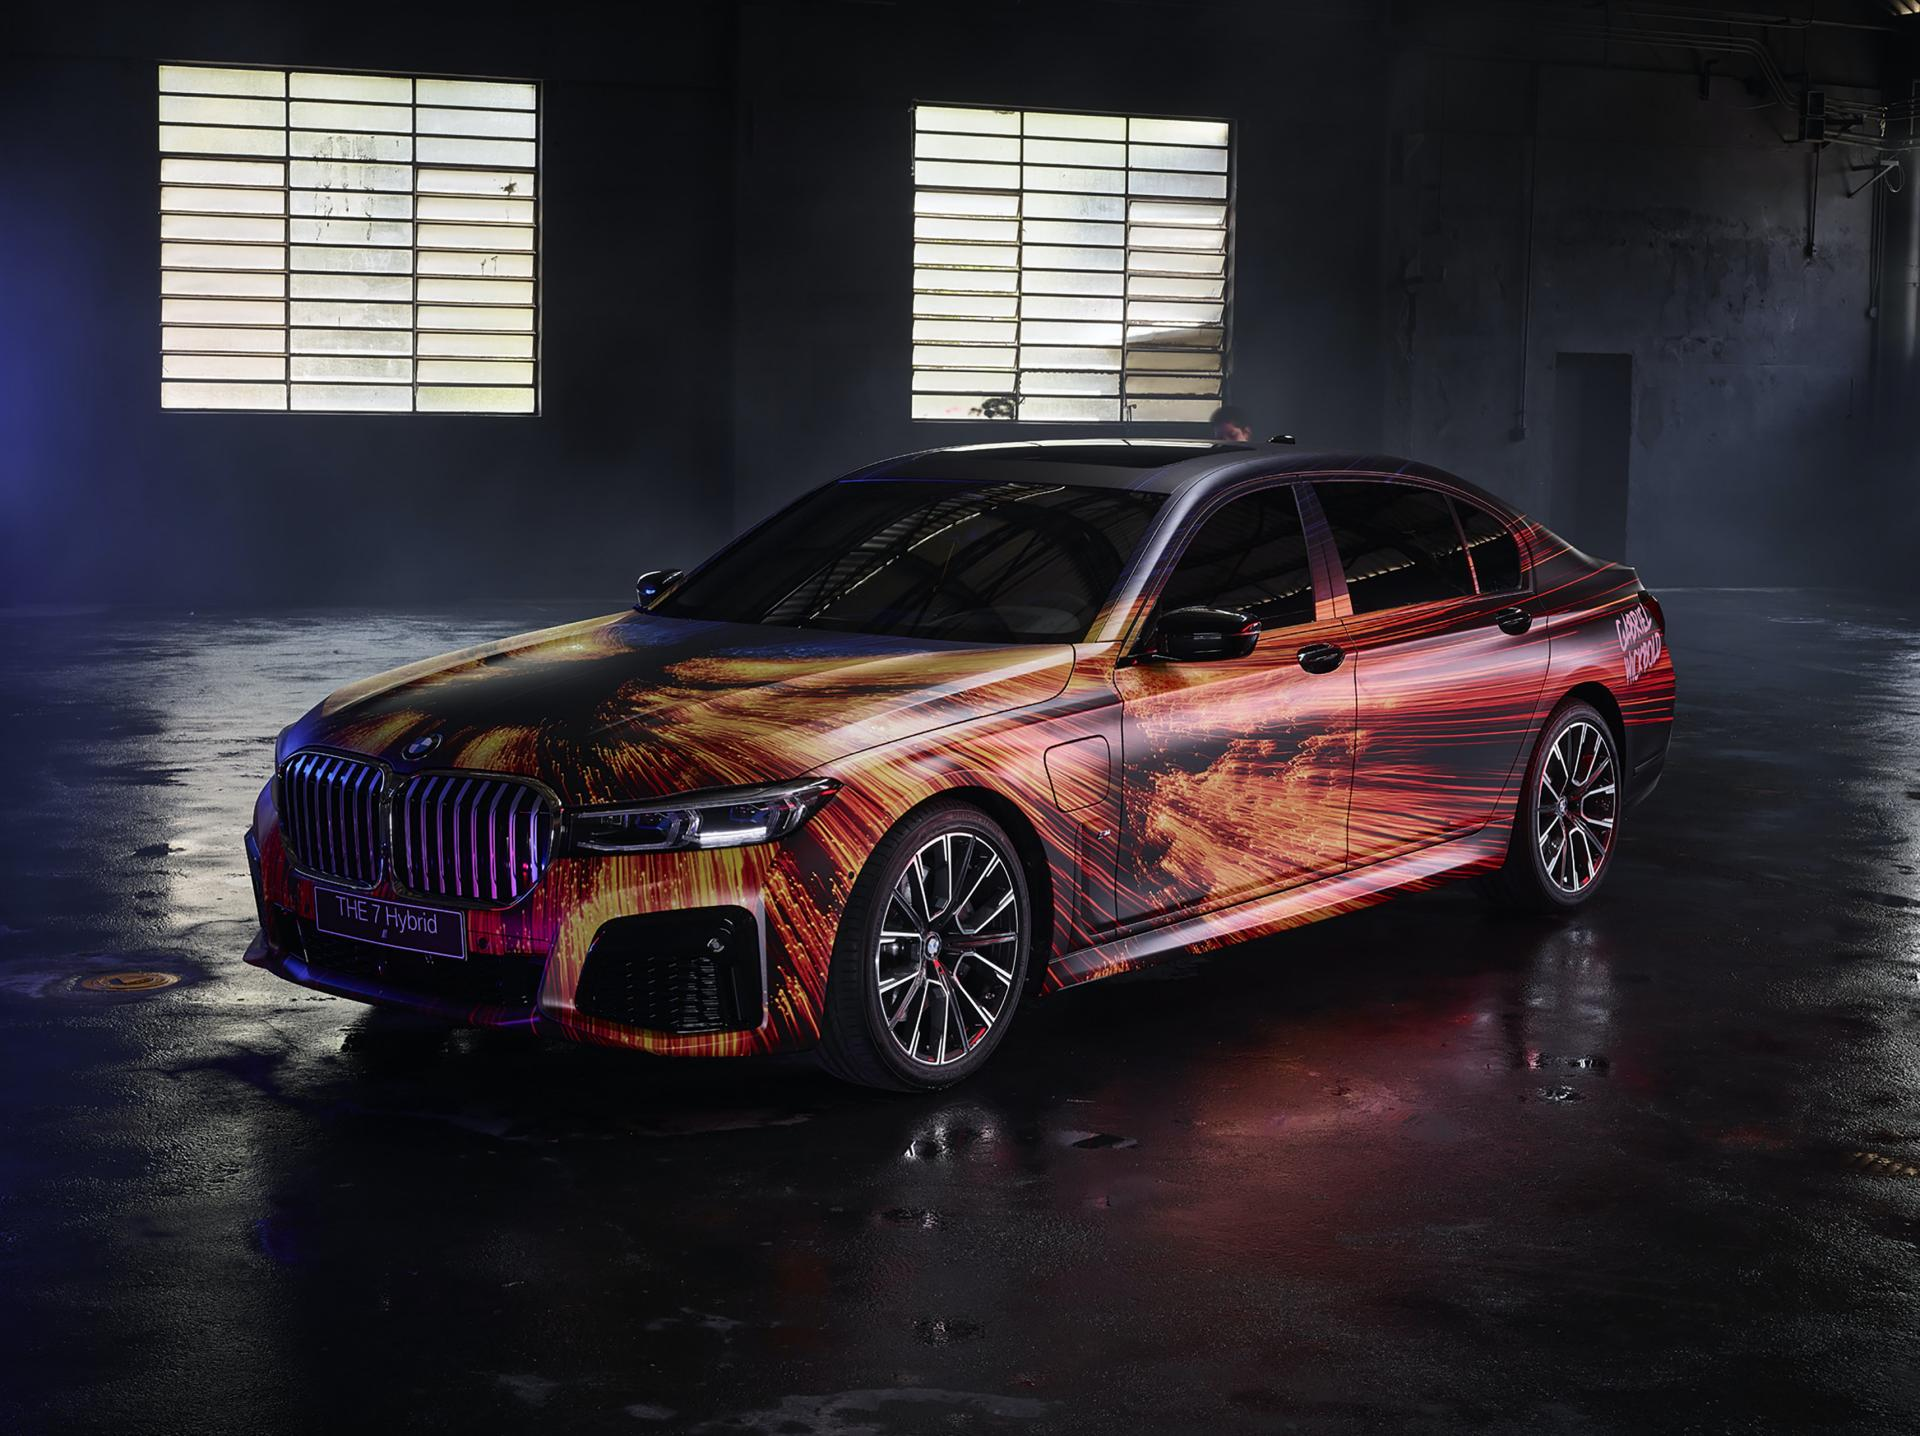 BMW-7-Series-745Le-M-Sport-Gabriel-Wickbold-Car-Art-8